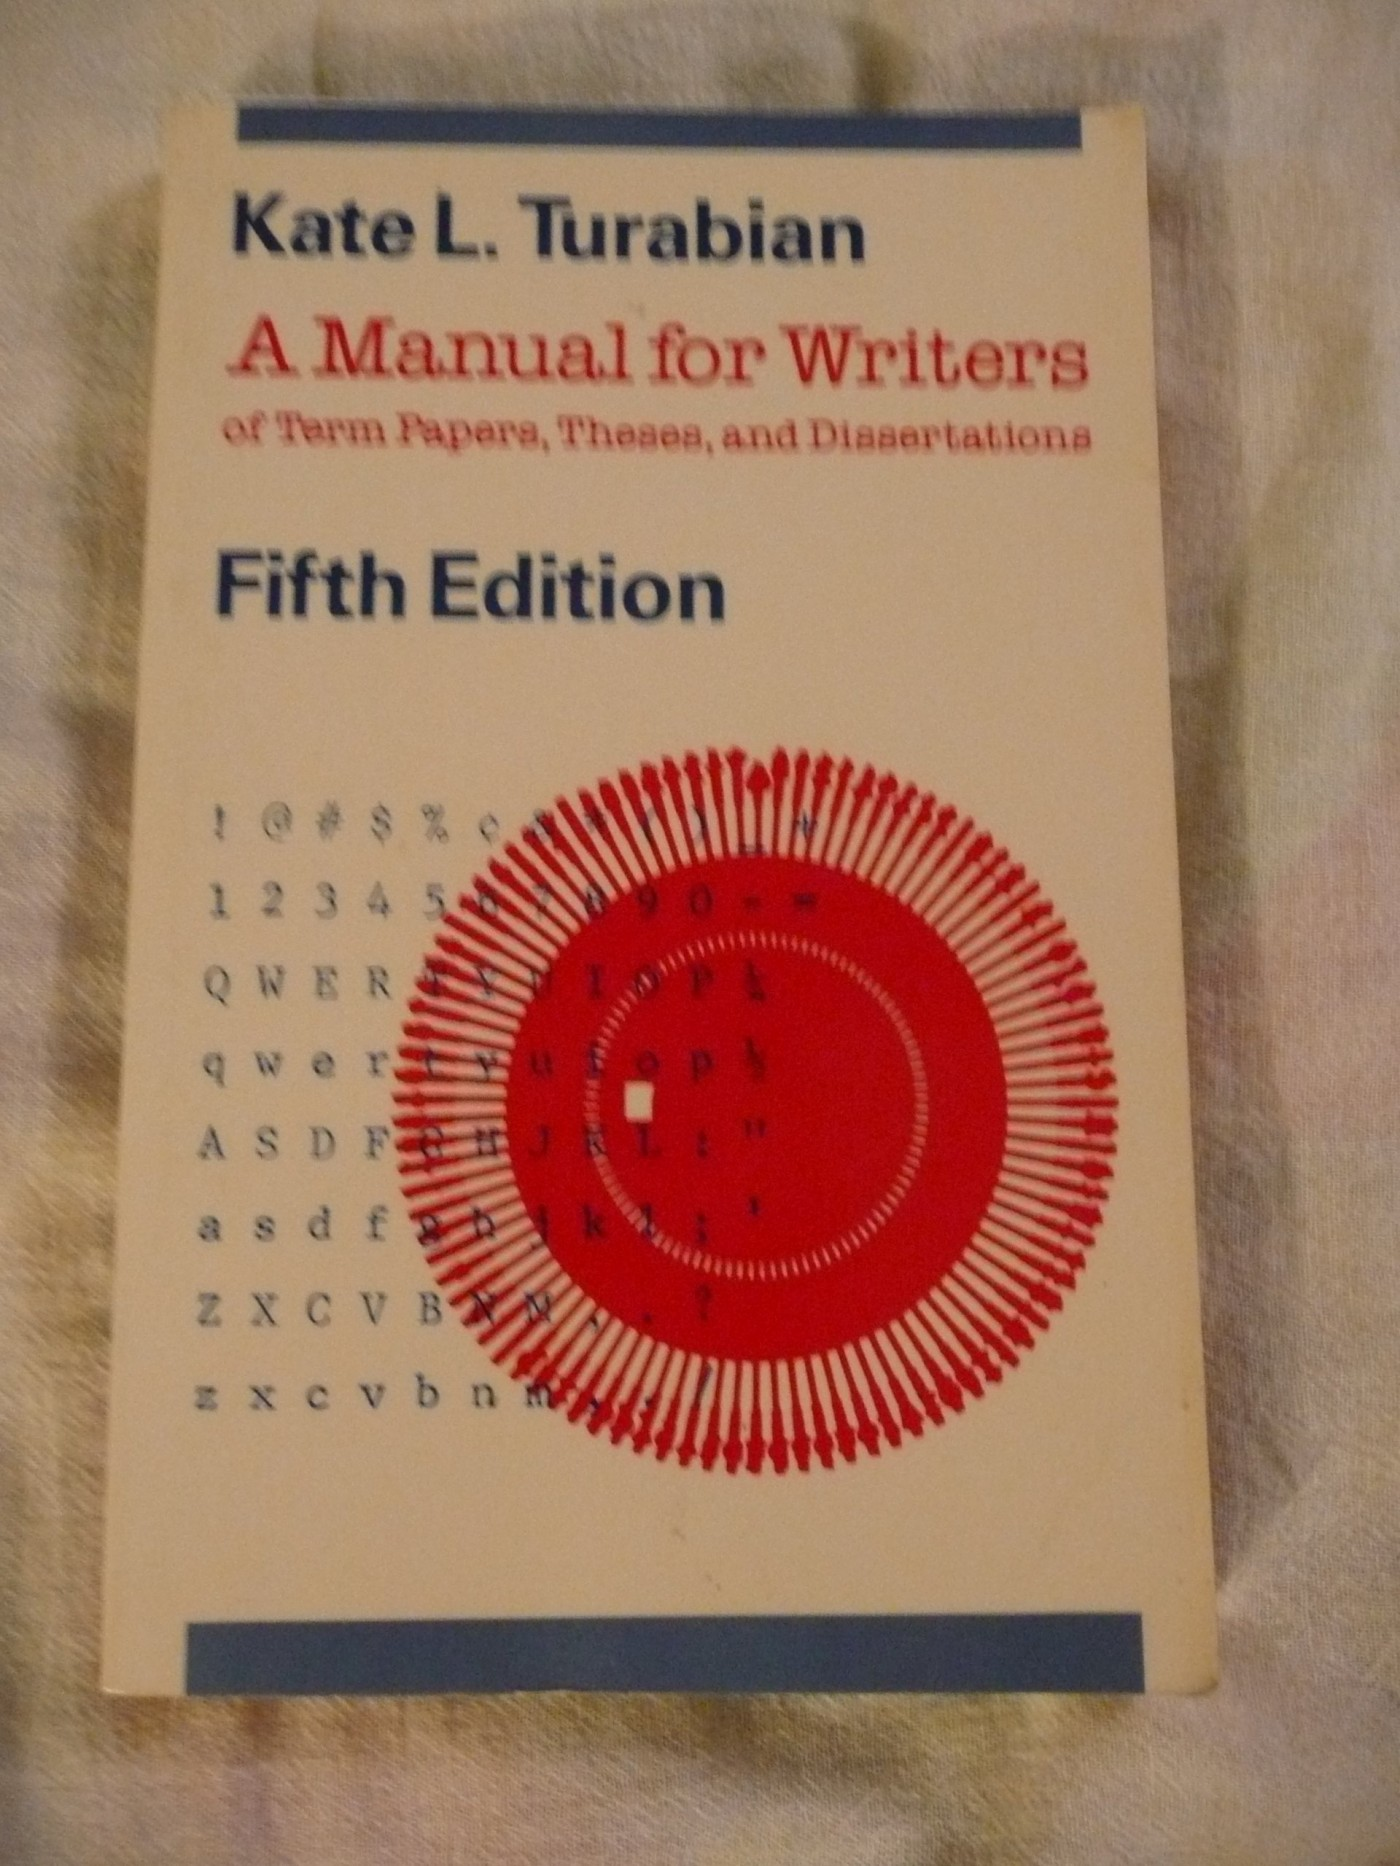 012 91nltv7olql Manual For Writers Of Researchs Theses And Dissertations Turabian Amazing A Research Papers Pdf 1400